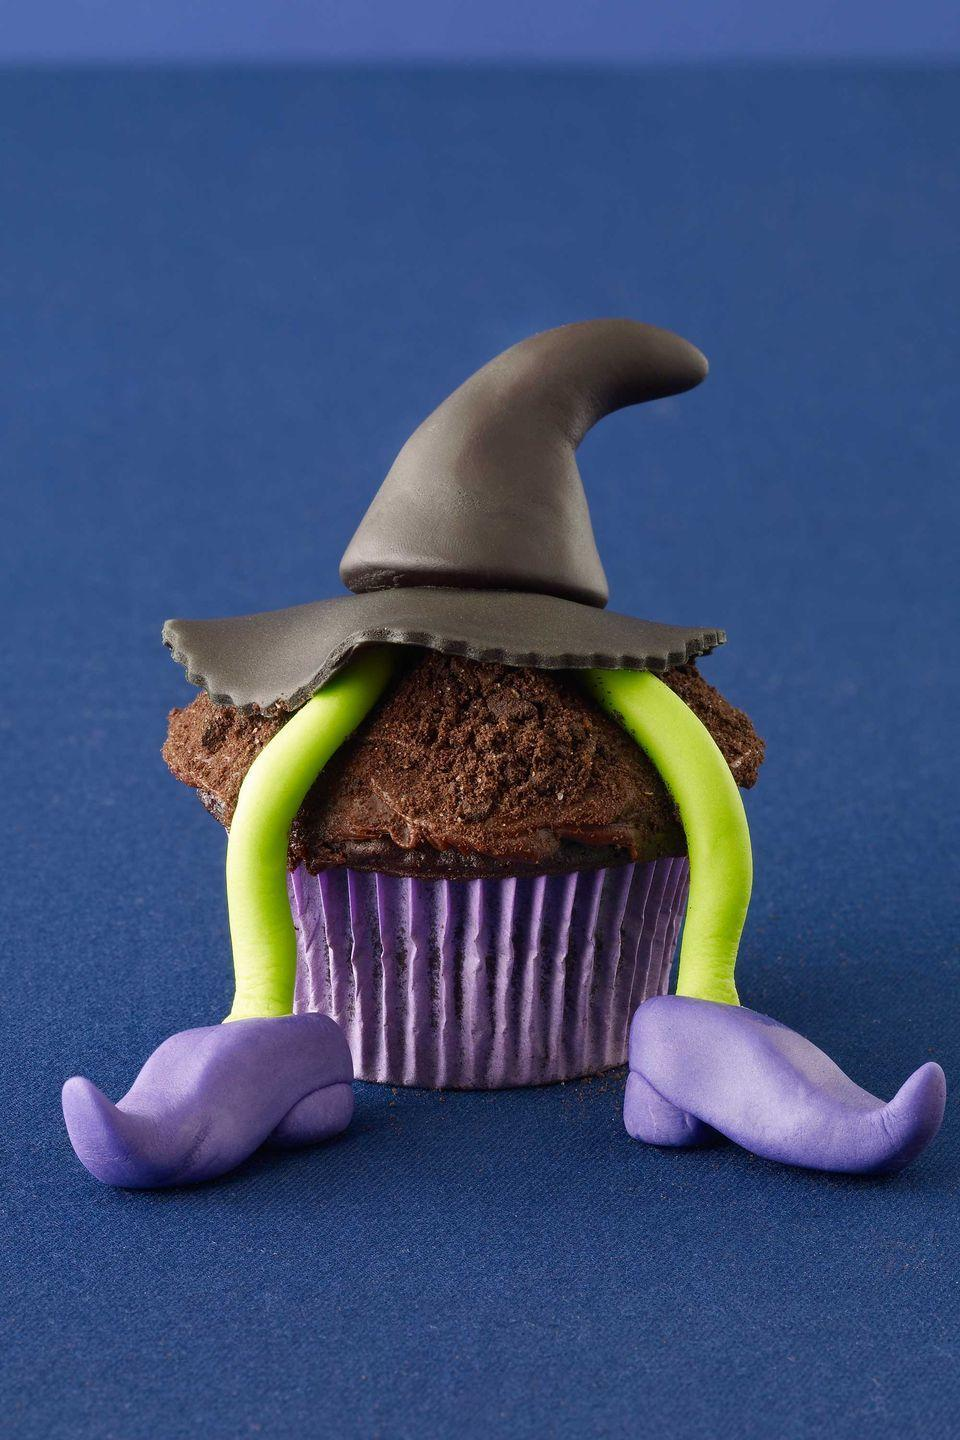 """<p>A fondant Wicked Witch of the East-like figure dangles deliciously from her perch: a cupcake topped with chocolate frosting and a dusting of crushed chocolate wafer cookies.</p><p><a href=""""https://www.womansday.com/food-recipes/food-drinks/recipes/a11480/wicked-witch-cupcake-recipe-122724/"""" rel=""""nofollow noopener"""" target=""""_blank"""" data-ylk=""""slk:Get the Wicked Witch Cupcake recipe."""" class=""""link rapid-noclick-resp""""><em>Get the Wicked Witch Cupcake recipe.</em></a></p>"""